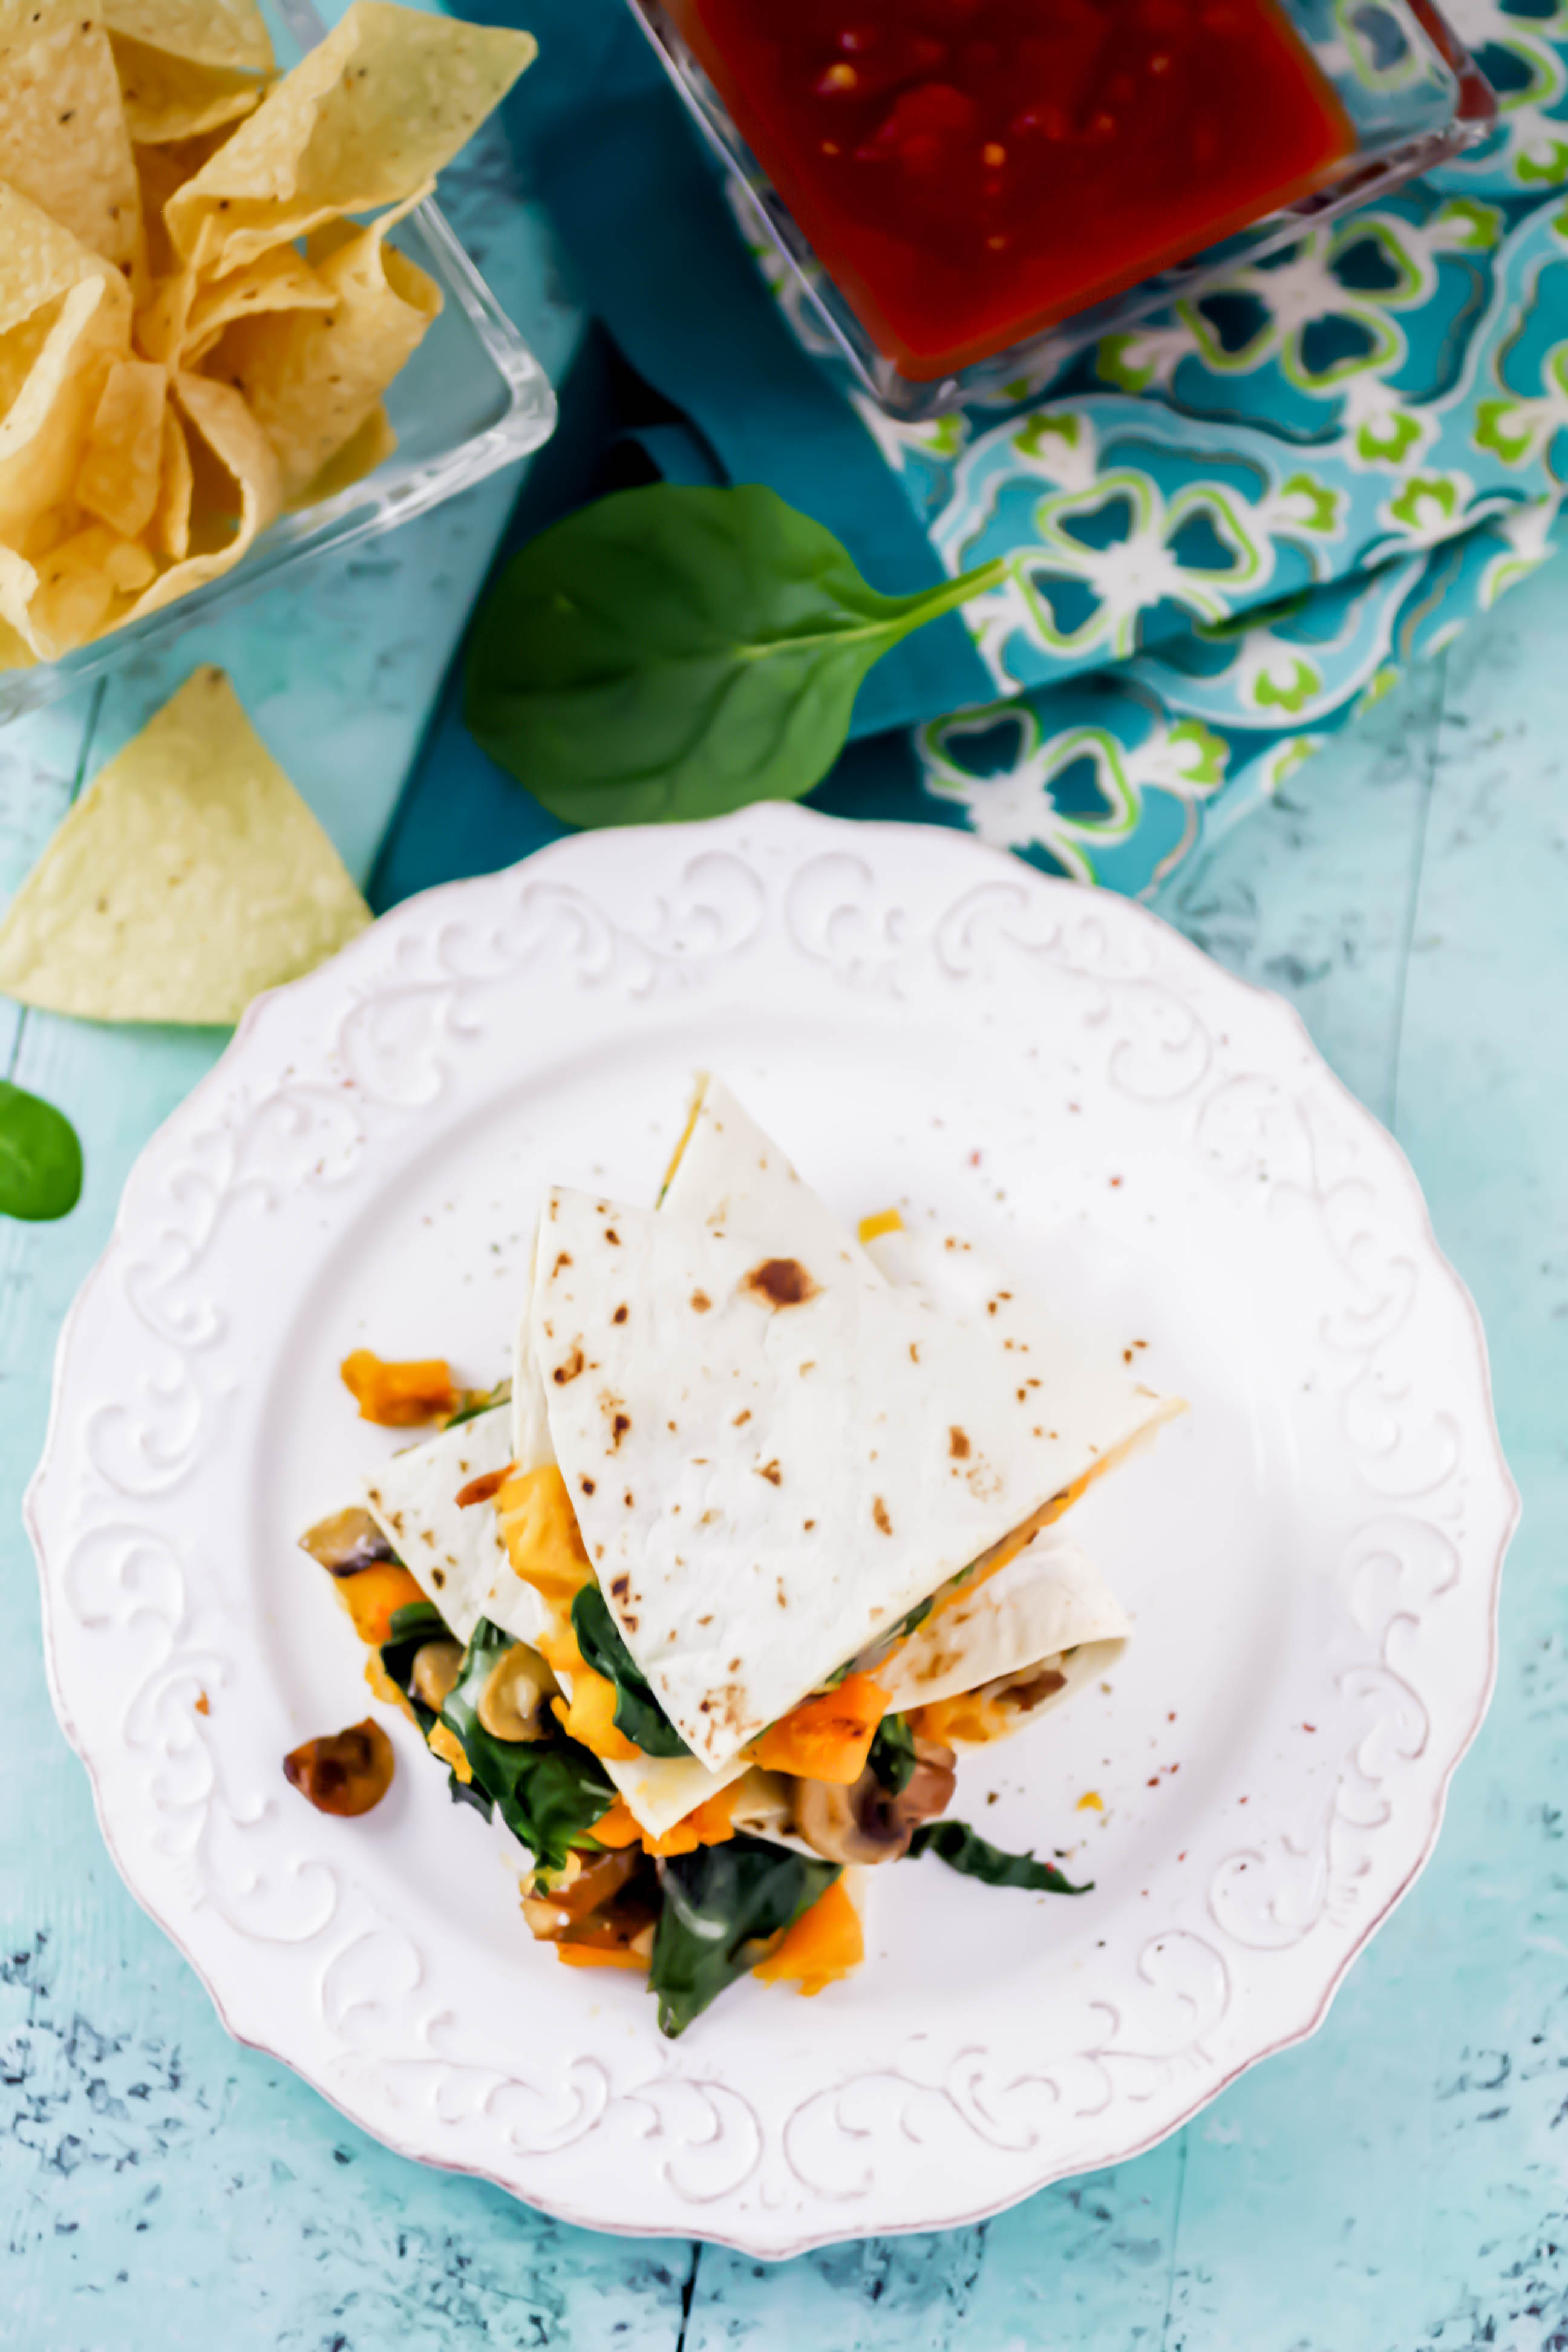 Butternut Squash, Mushroom, Onion, and Spinach Quesadillas are a great easy-meal option. Butternut Squash, Mushroom, Onion, and Spinach Quesadillas include colorful and seasonal ingredients for a fabulous meal.